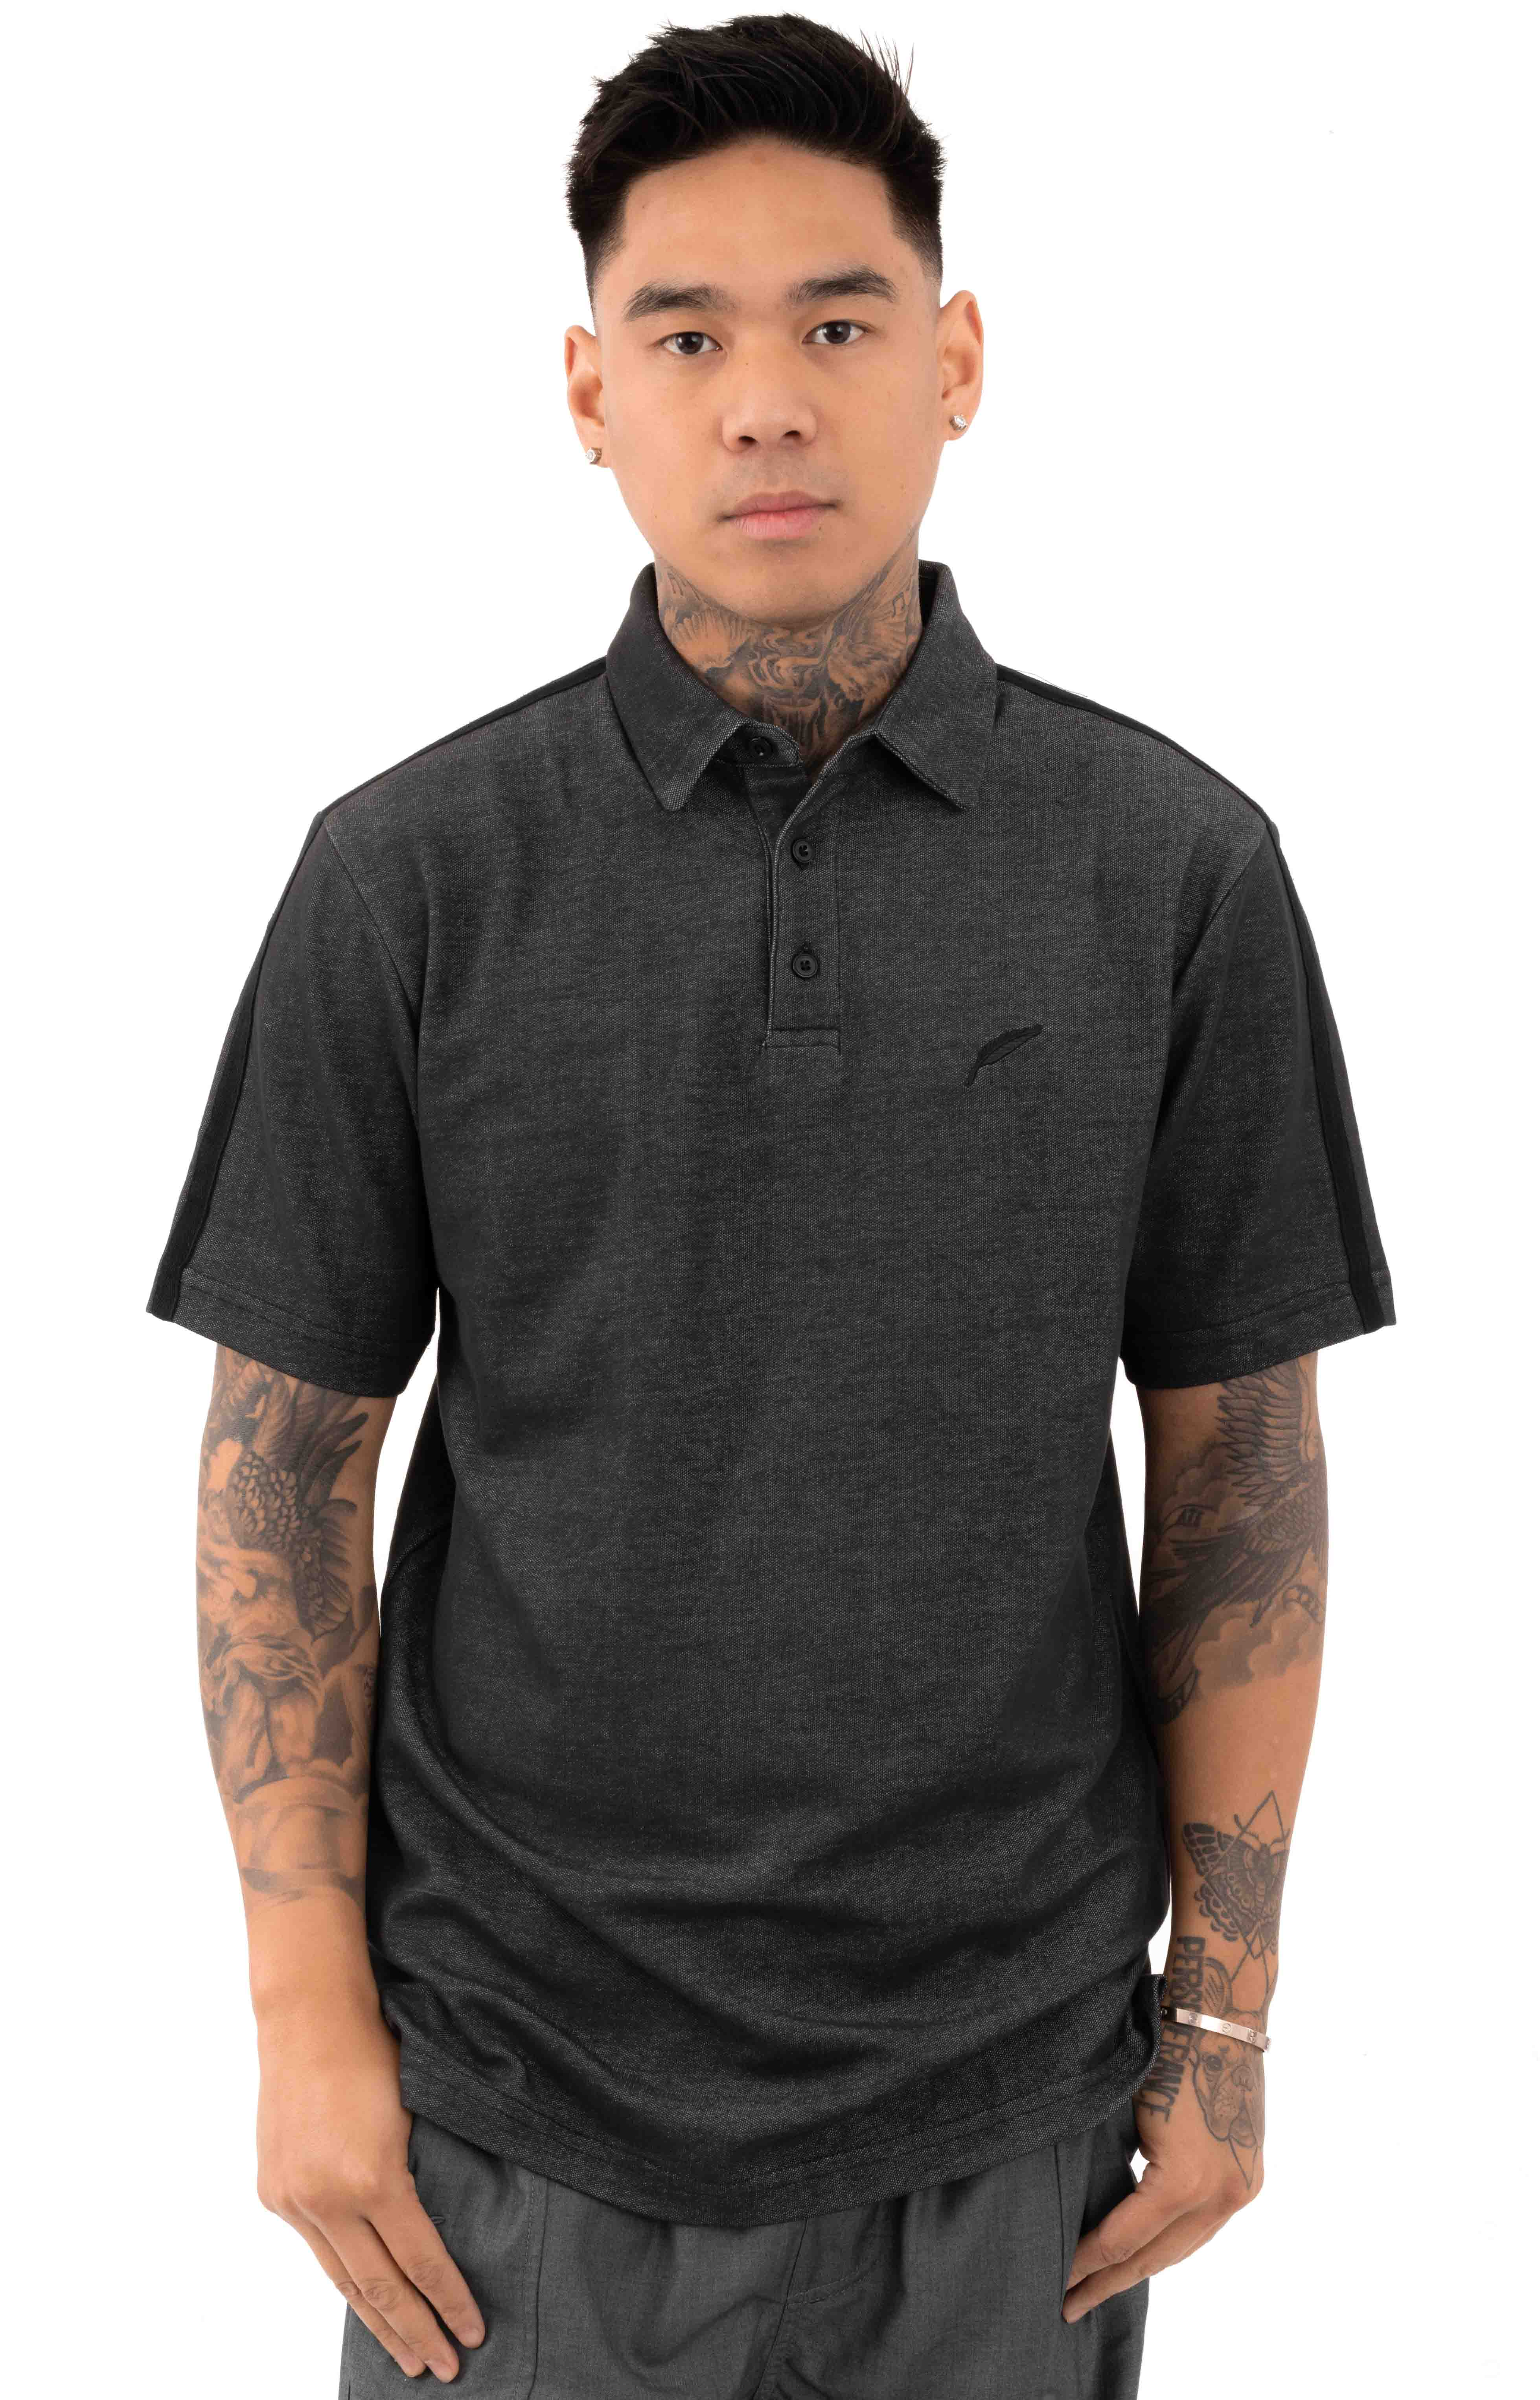 Index S/S Polo Shirt - Charcoal